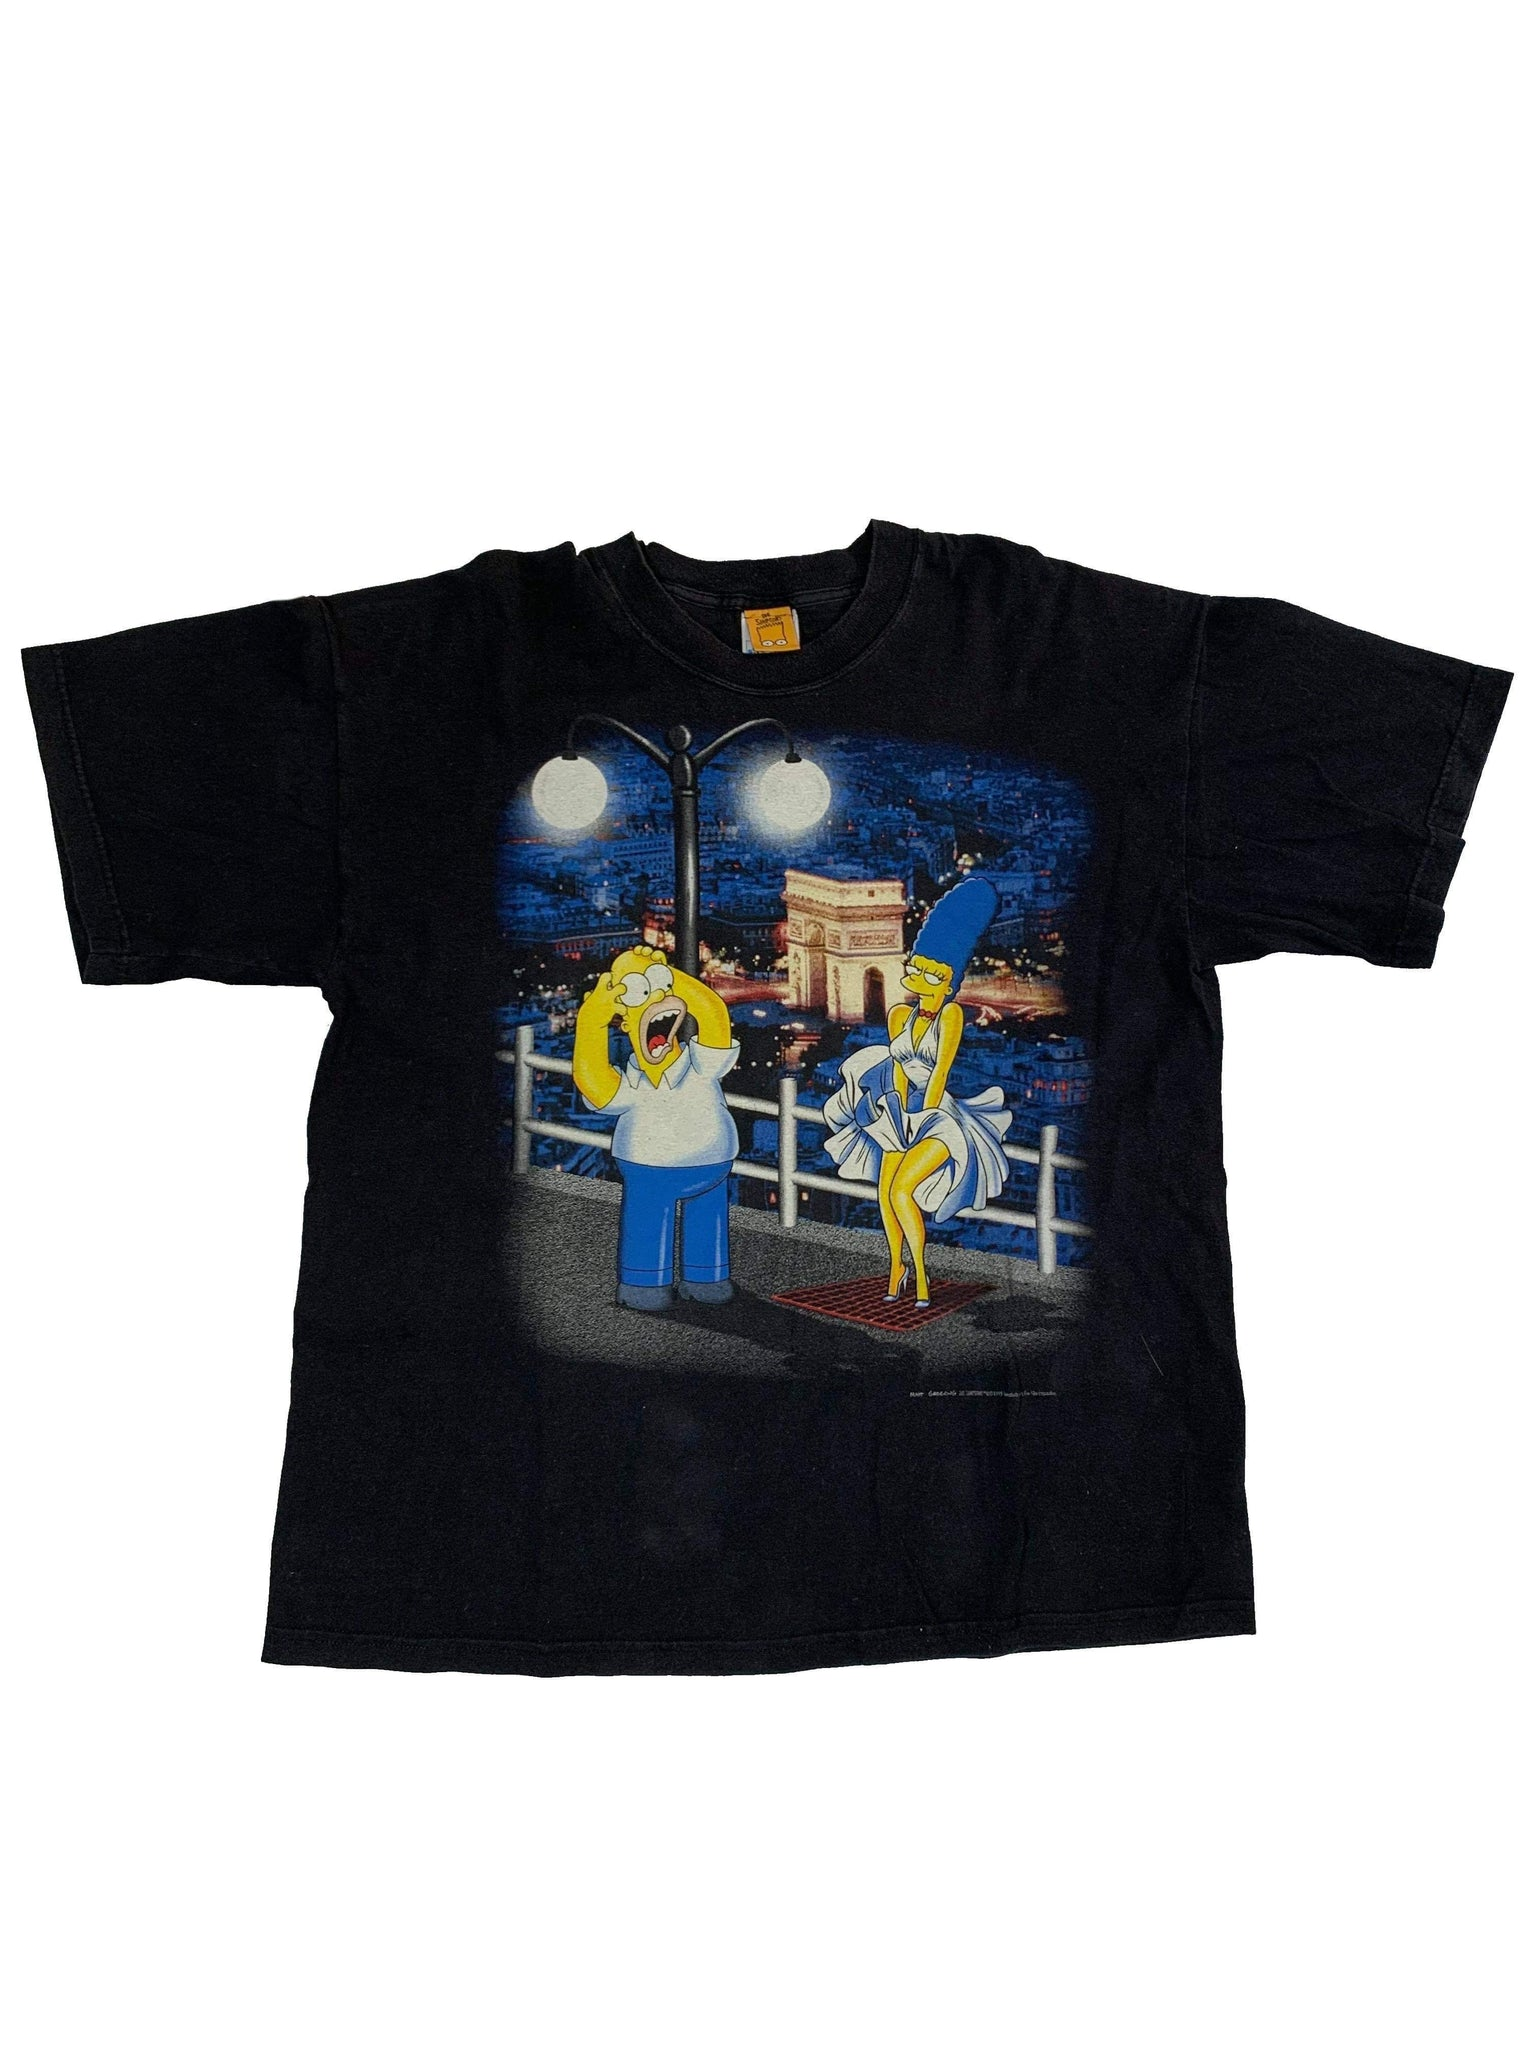 Vintage The Simpson's Tee 1999 - XL